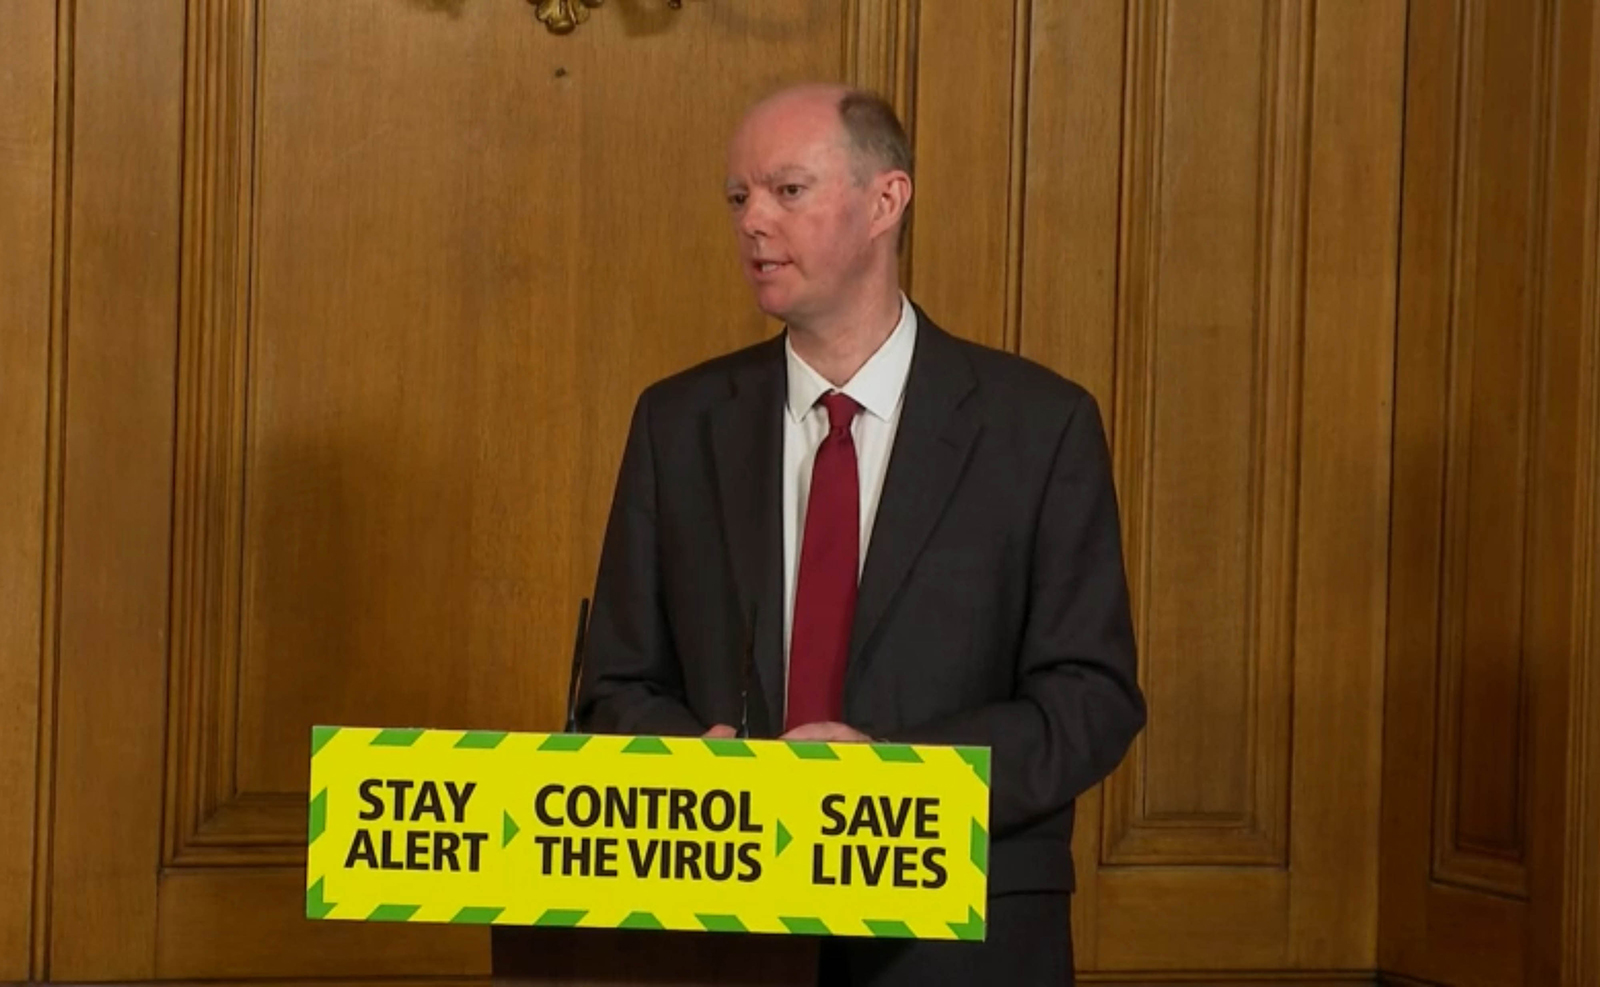 In this screen grab, Chief Medical Officer Professor Chris Whitty speaks during a media briefing in Downing Street, London on July 3.